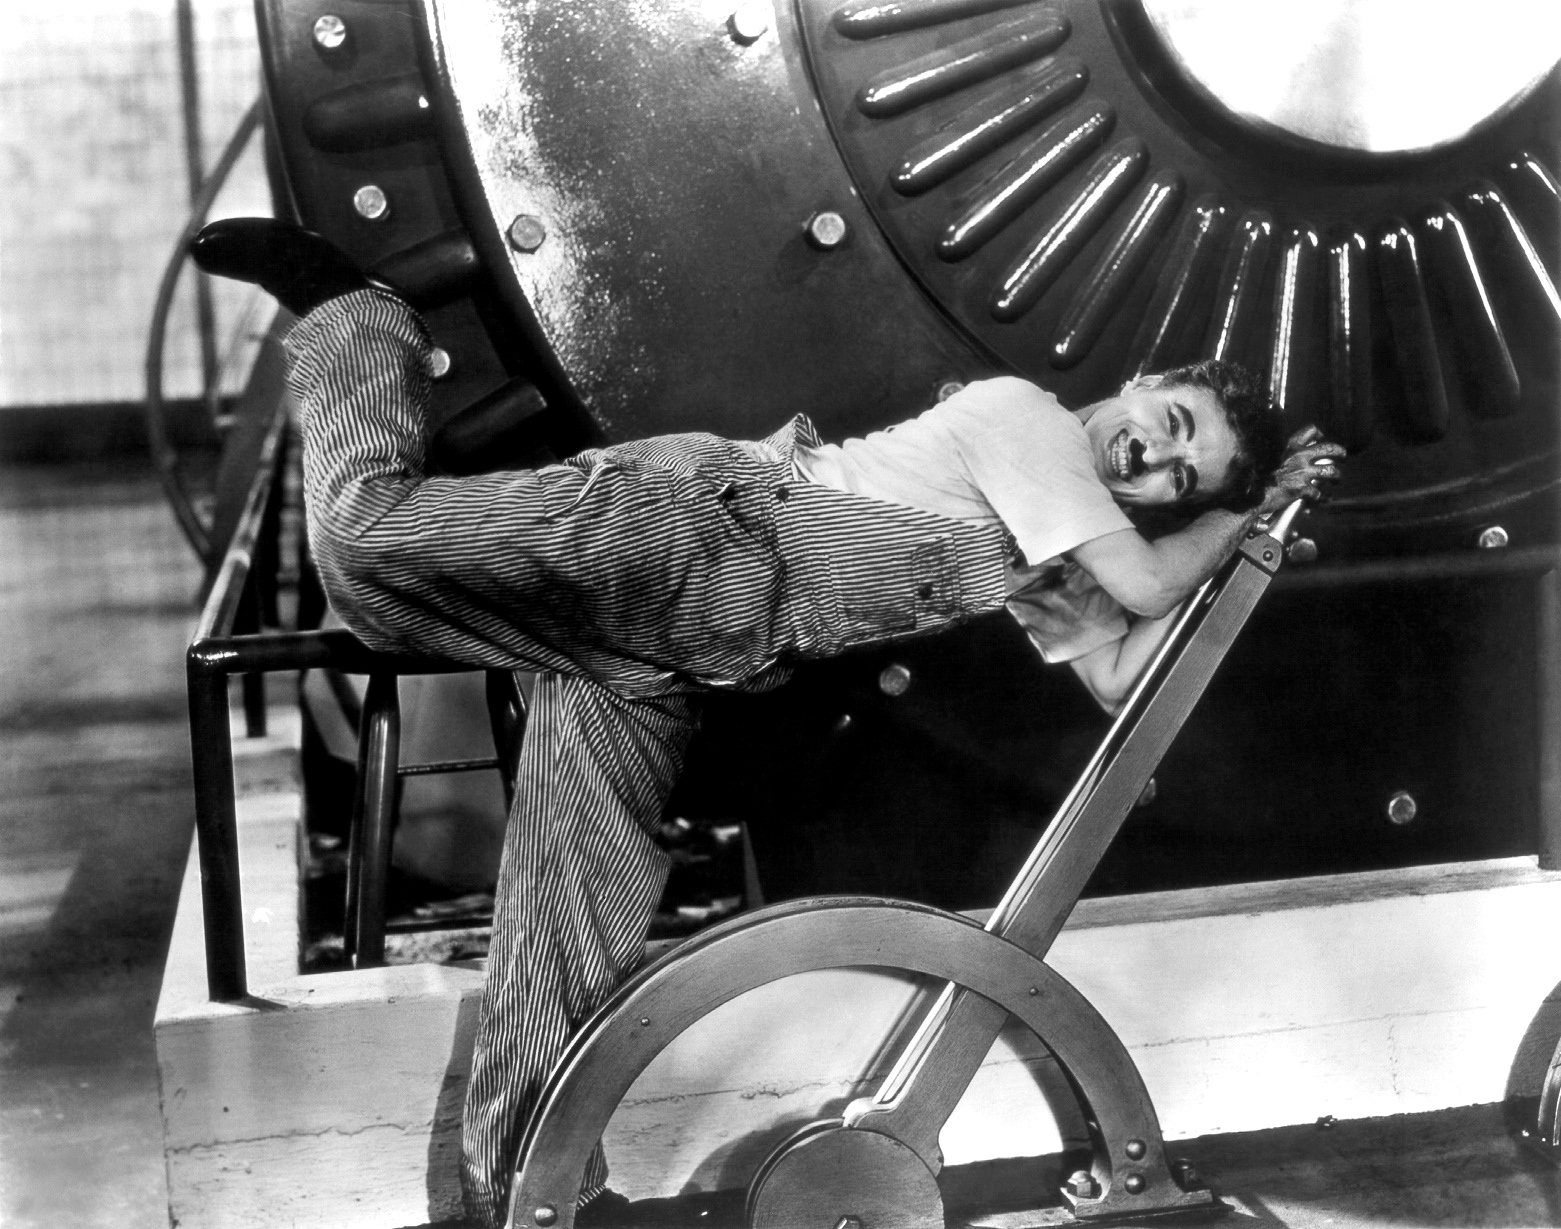 Charlie Chaplin on one foot, his other kicked up behind him, as he is pulled forward by a large lever. A large piece of industrial machinery dominates the background.